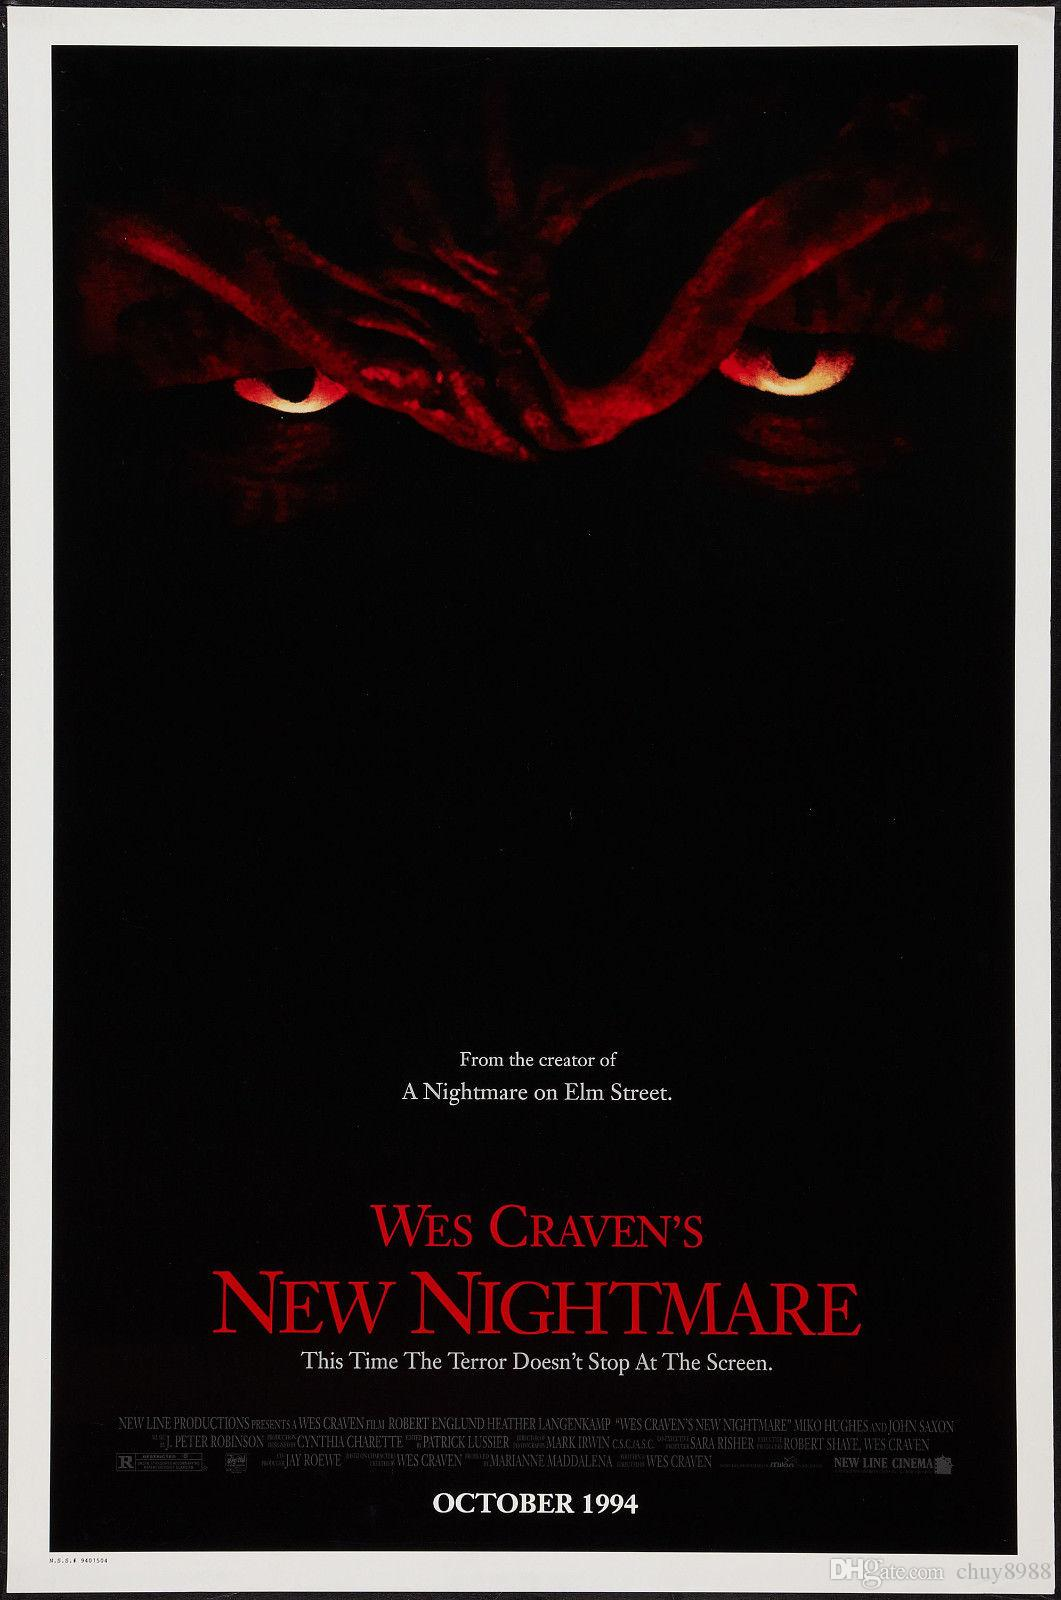 Horror: A New Nightmare Movie By Wes Craven Art Silk Print Poster 24x36inch(60x90cm) 015